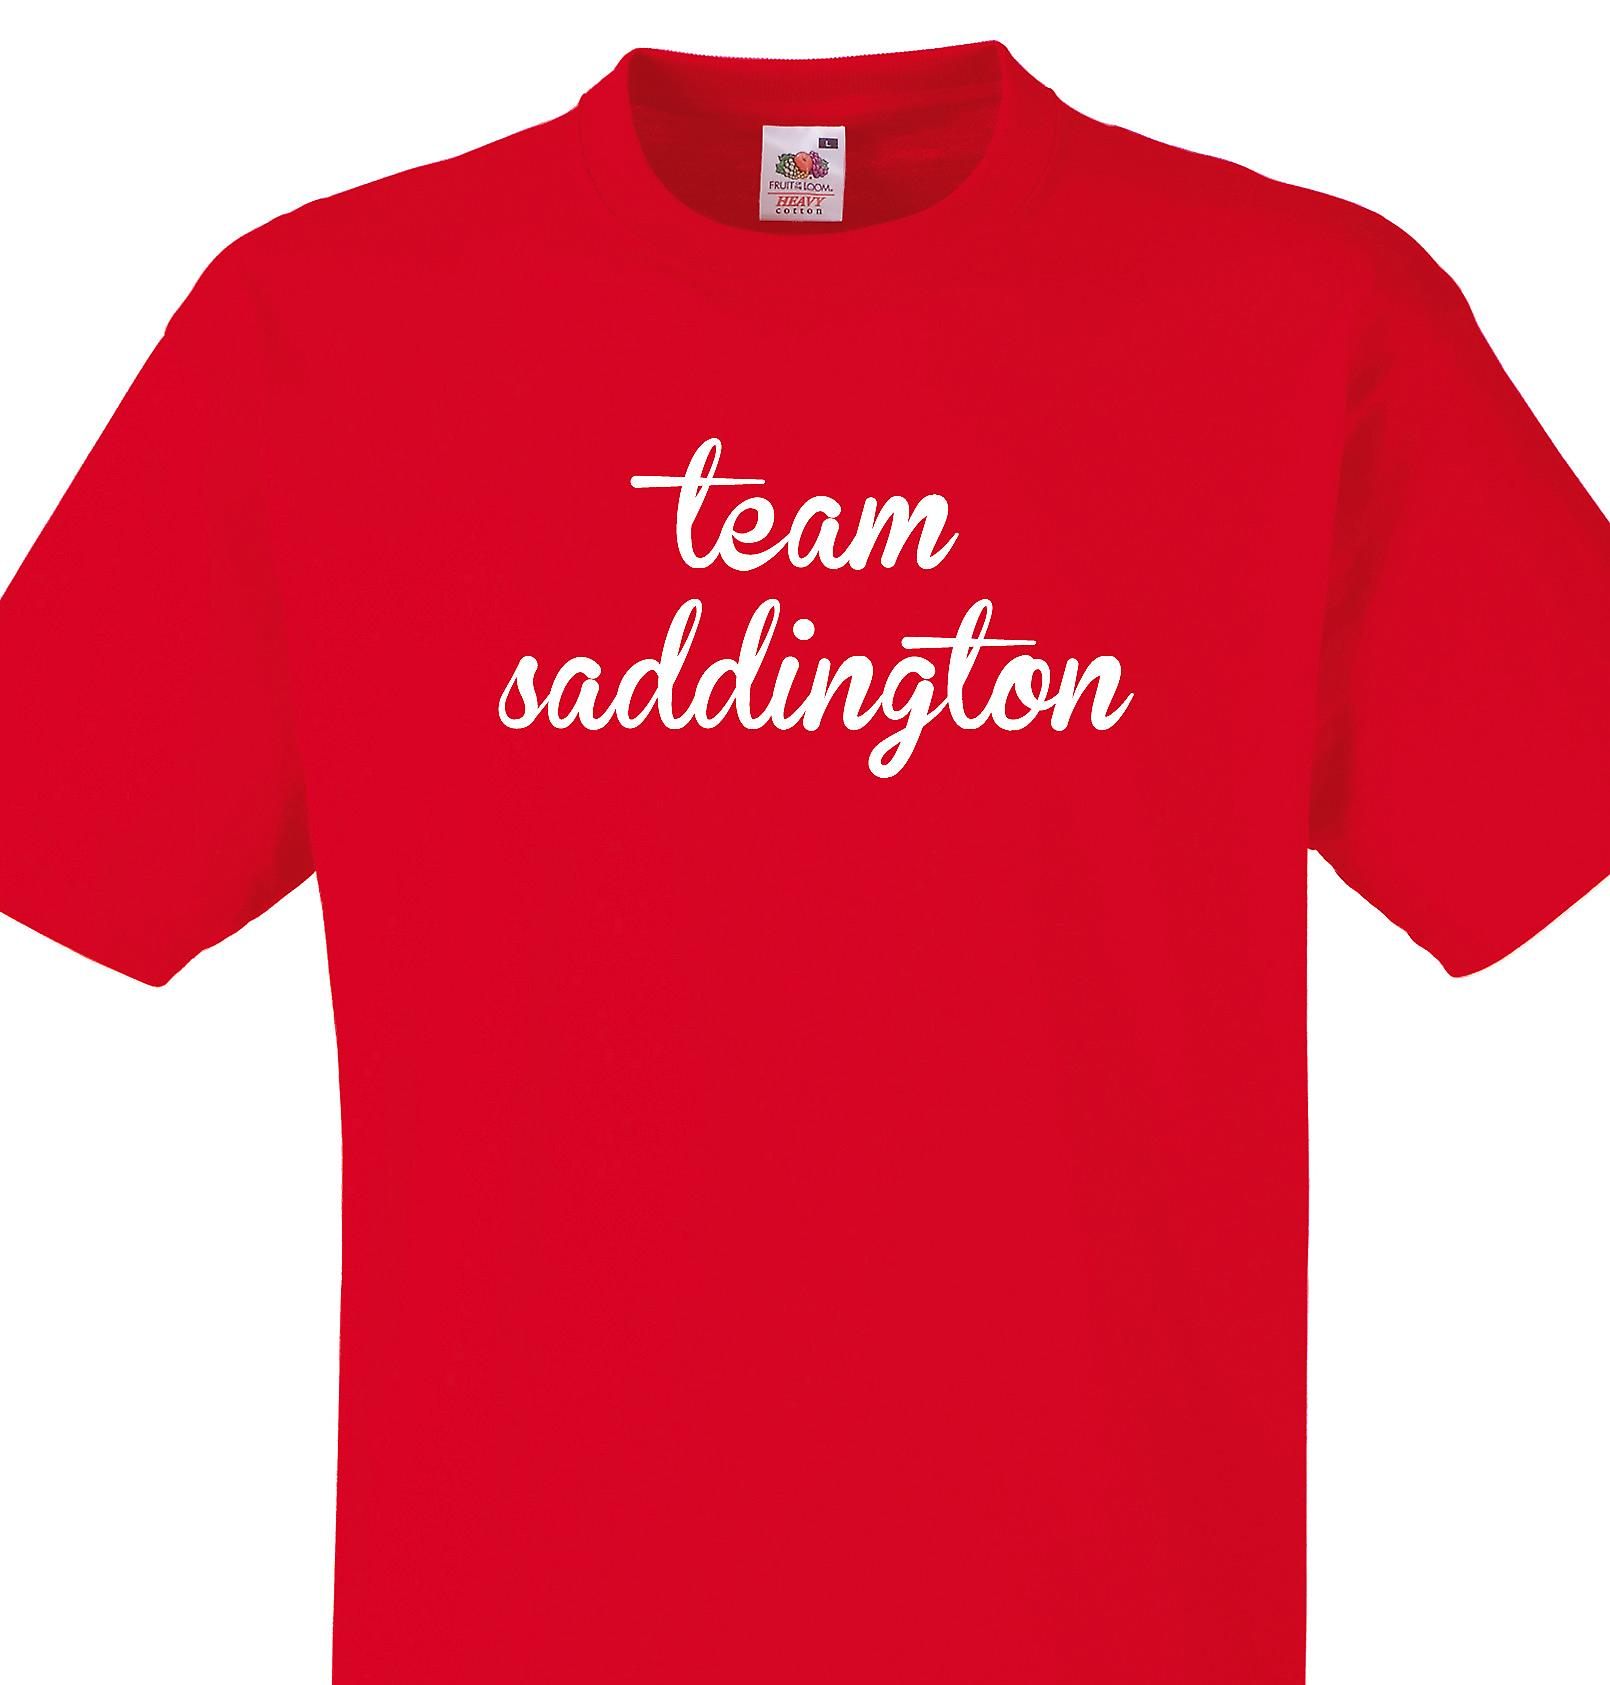 Team Saddington Red T shirt